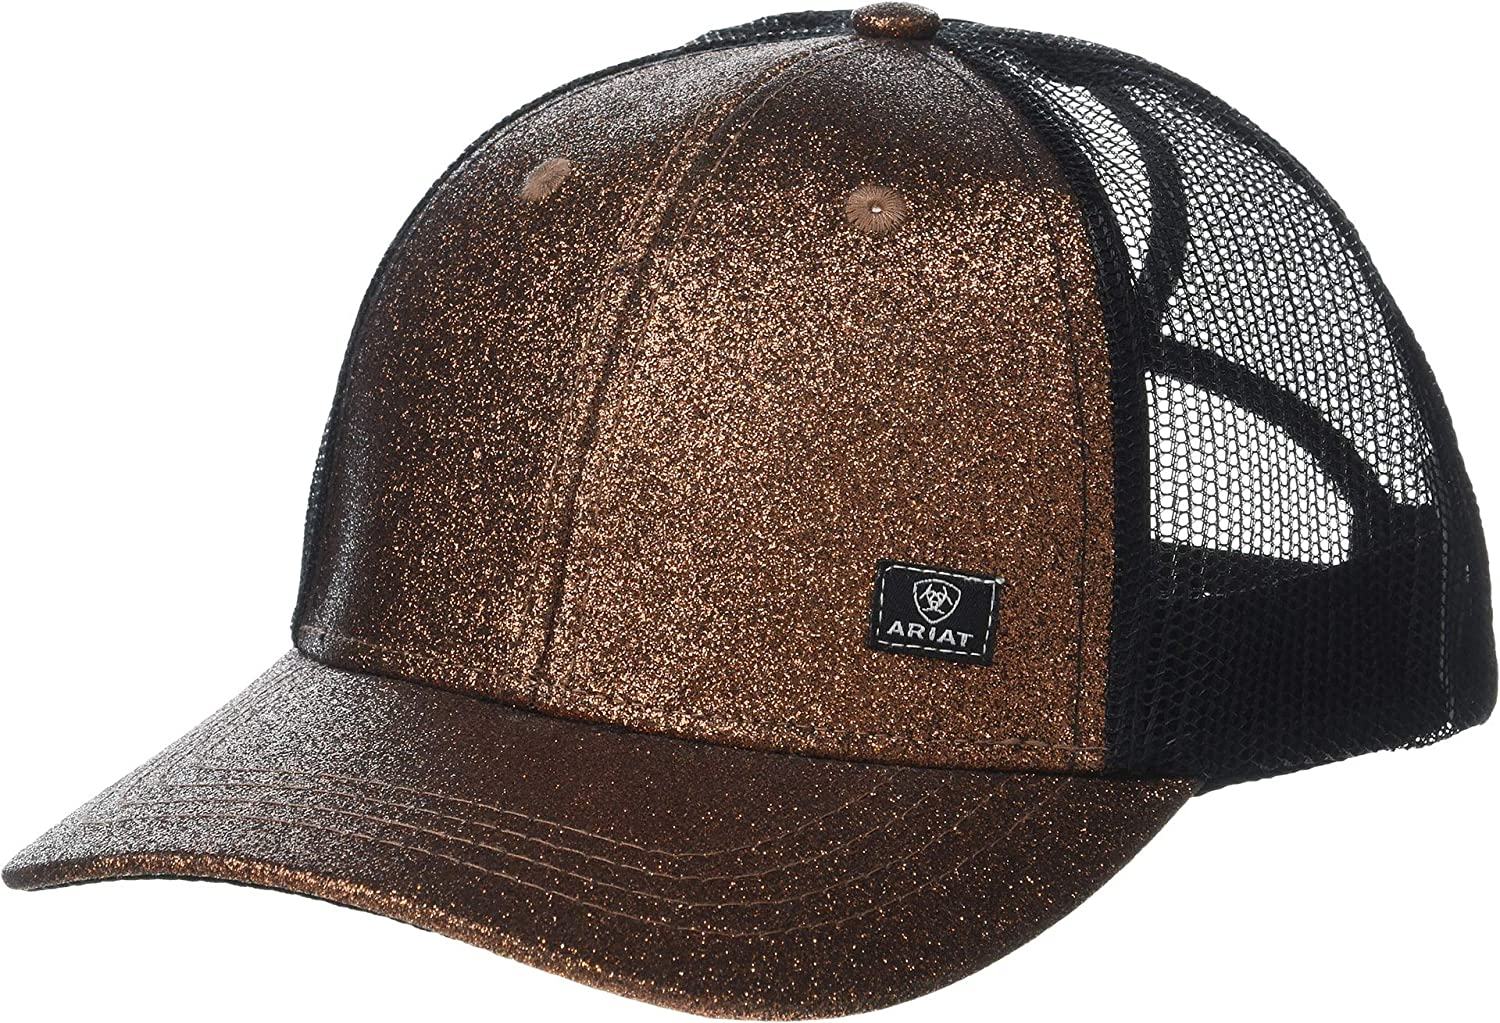 ARIAT Accessories Many popular brands Ladies SB Giltter A3000053216 Messy Free shipping on posting reviews CPR Bun